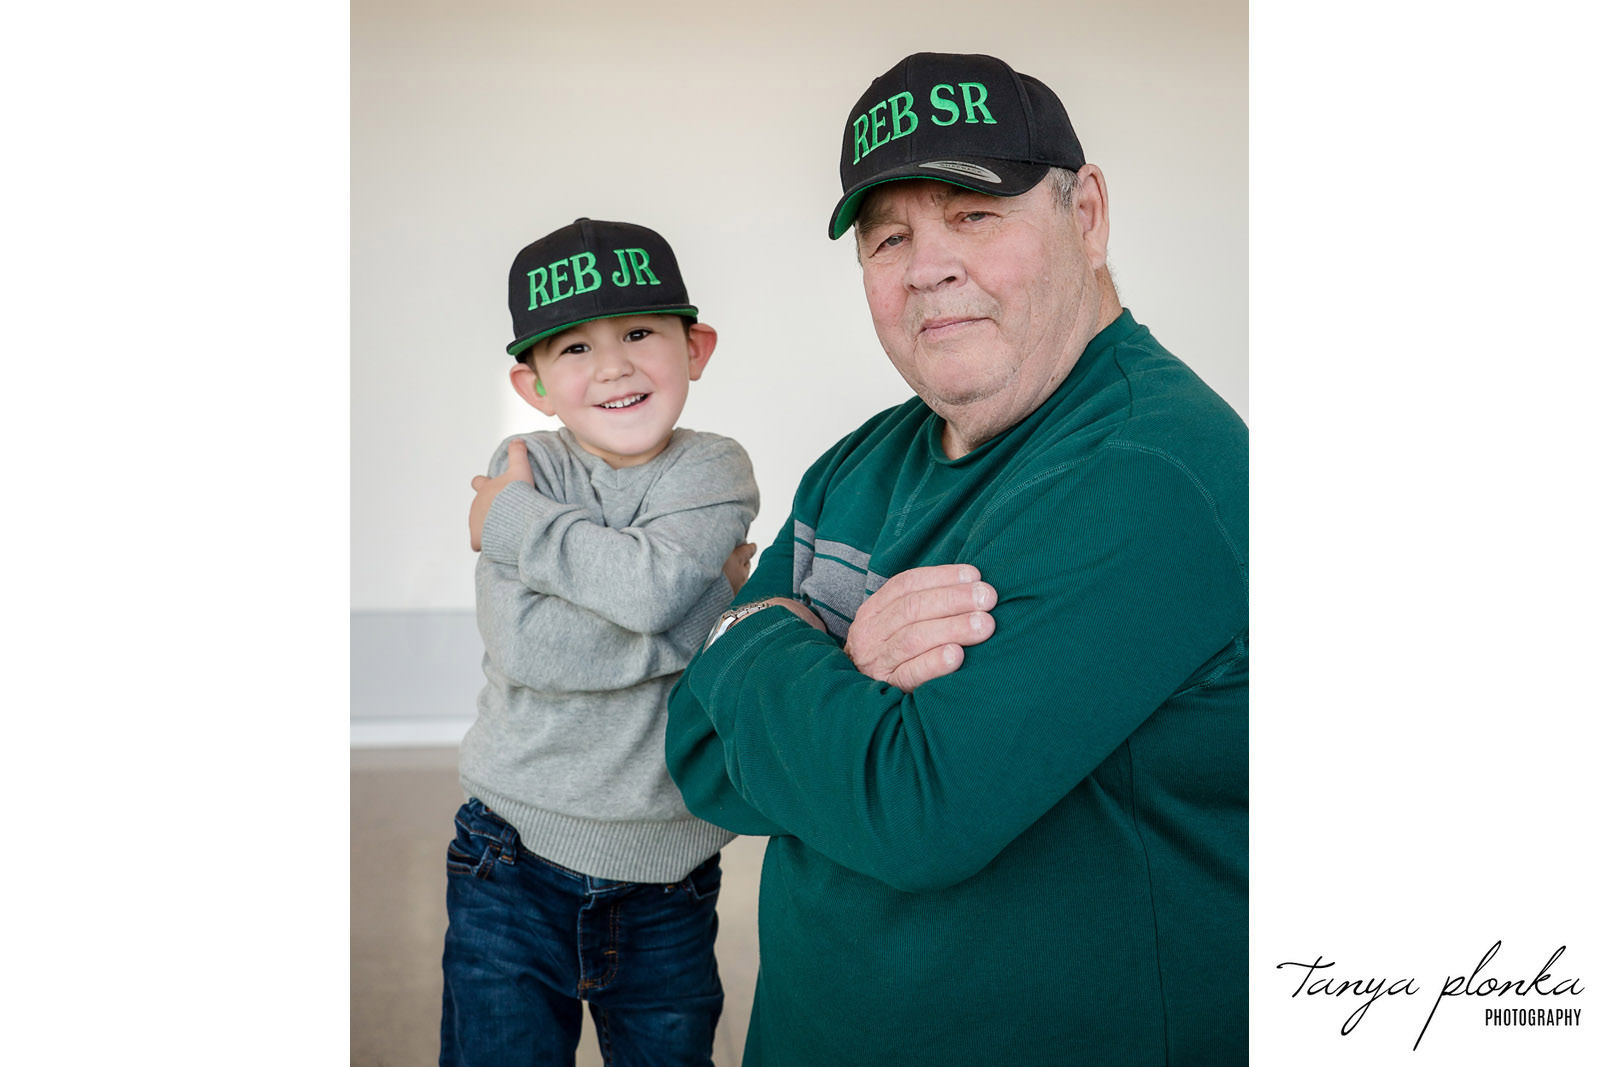 Grandpa and great grandson in matching hats stand with arms crossed